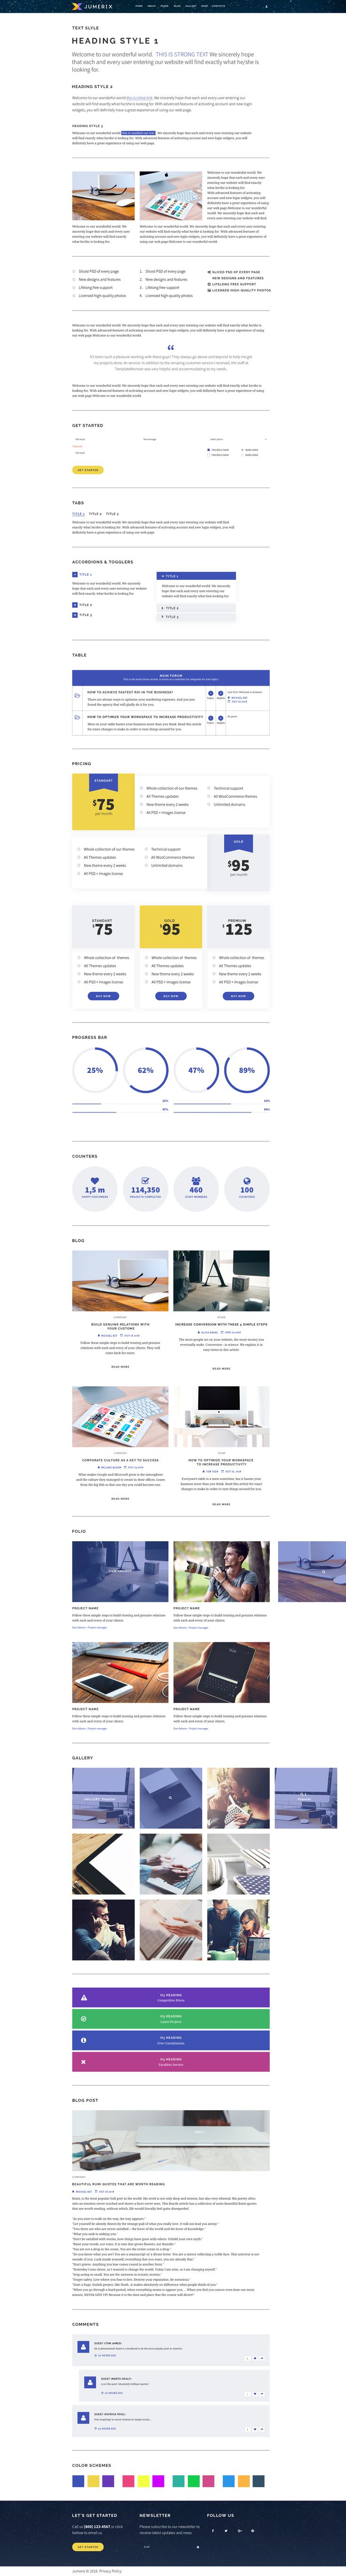 Home Elements of Jumerix - New Joomla Template: http://www.templatemonster.com/jumerix-multipurpose-joomla-template-60060.html